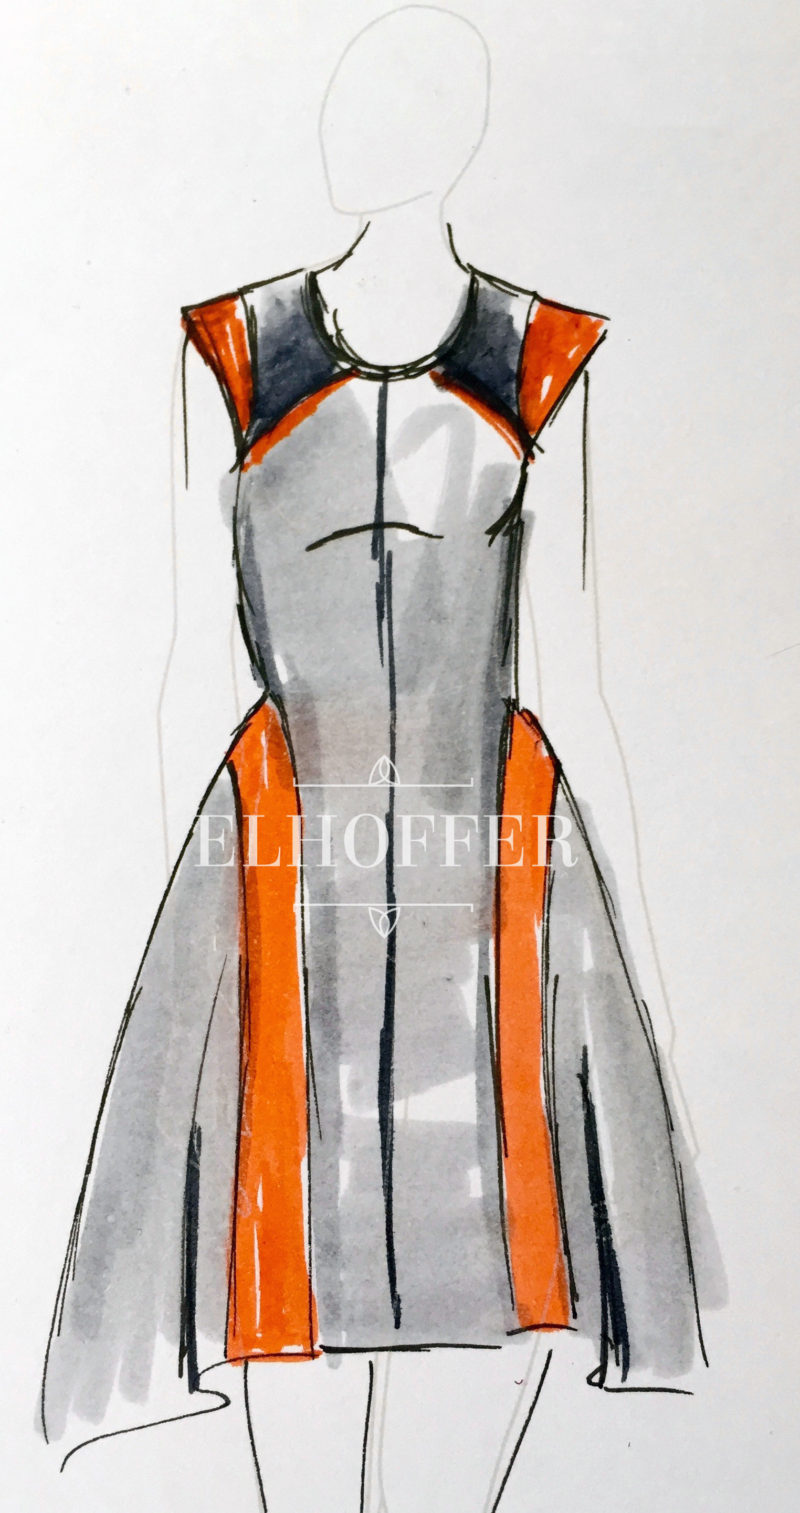 Elhoffer Design - BB-8 inspired dress concept sketch